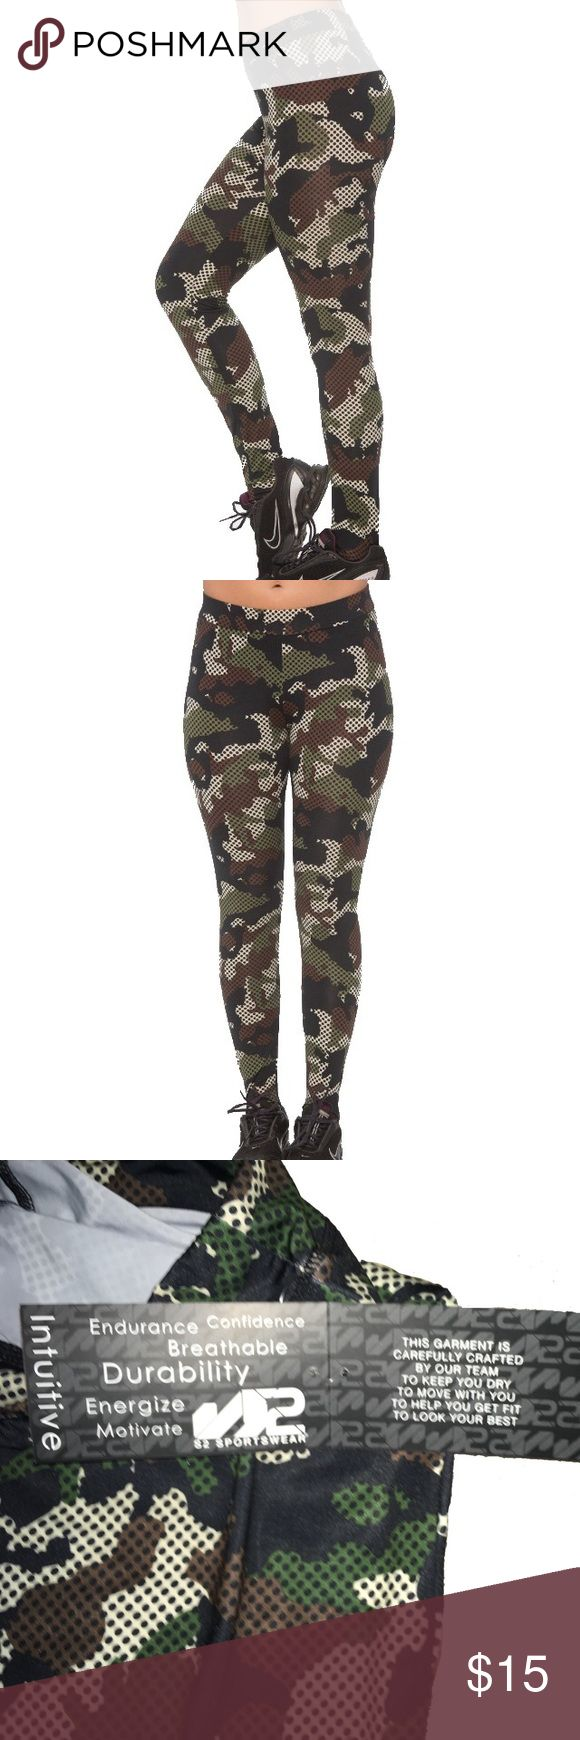 NWT Camouflage XL Stretch Leggings Pants Workout S2 Sportswear Camo Leggings with Zipper Pocket along the waistline. Size Extra Large- runs small fits more like a Large. In Black (black, white, gray) & Green (green, black, tan). Both are New With Tags. They Retail for $79 each. S2 Sportswear Pants Leggings